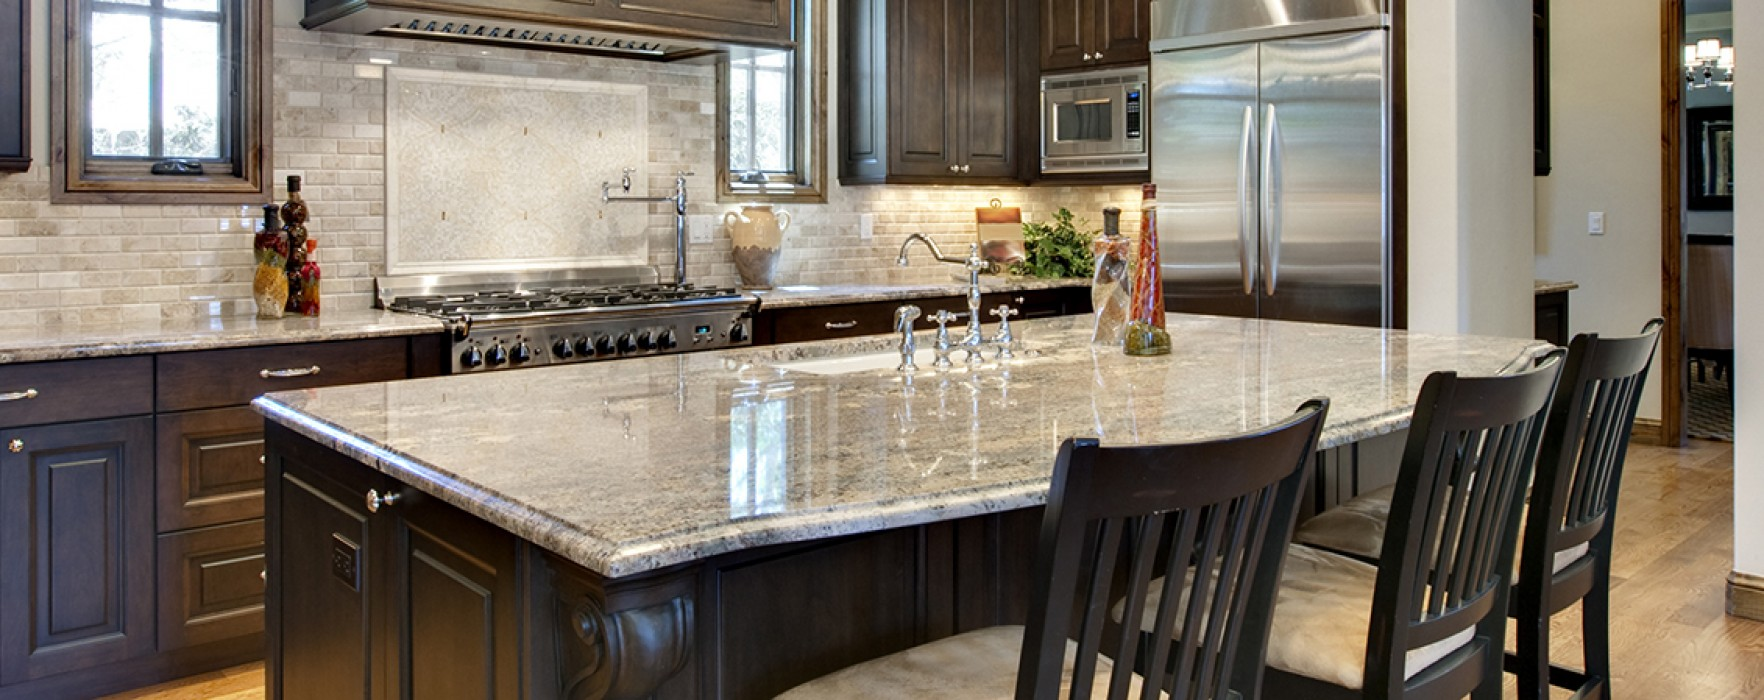 Kitchen Makeover Classy Easy Kitchen Makeover Refinished Countertops  Better Homes And Decorating Design